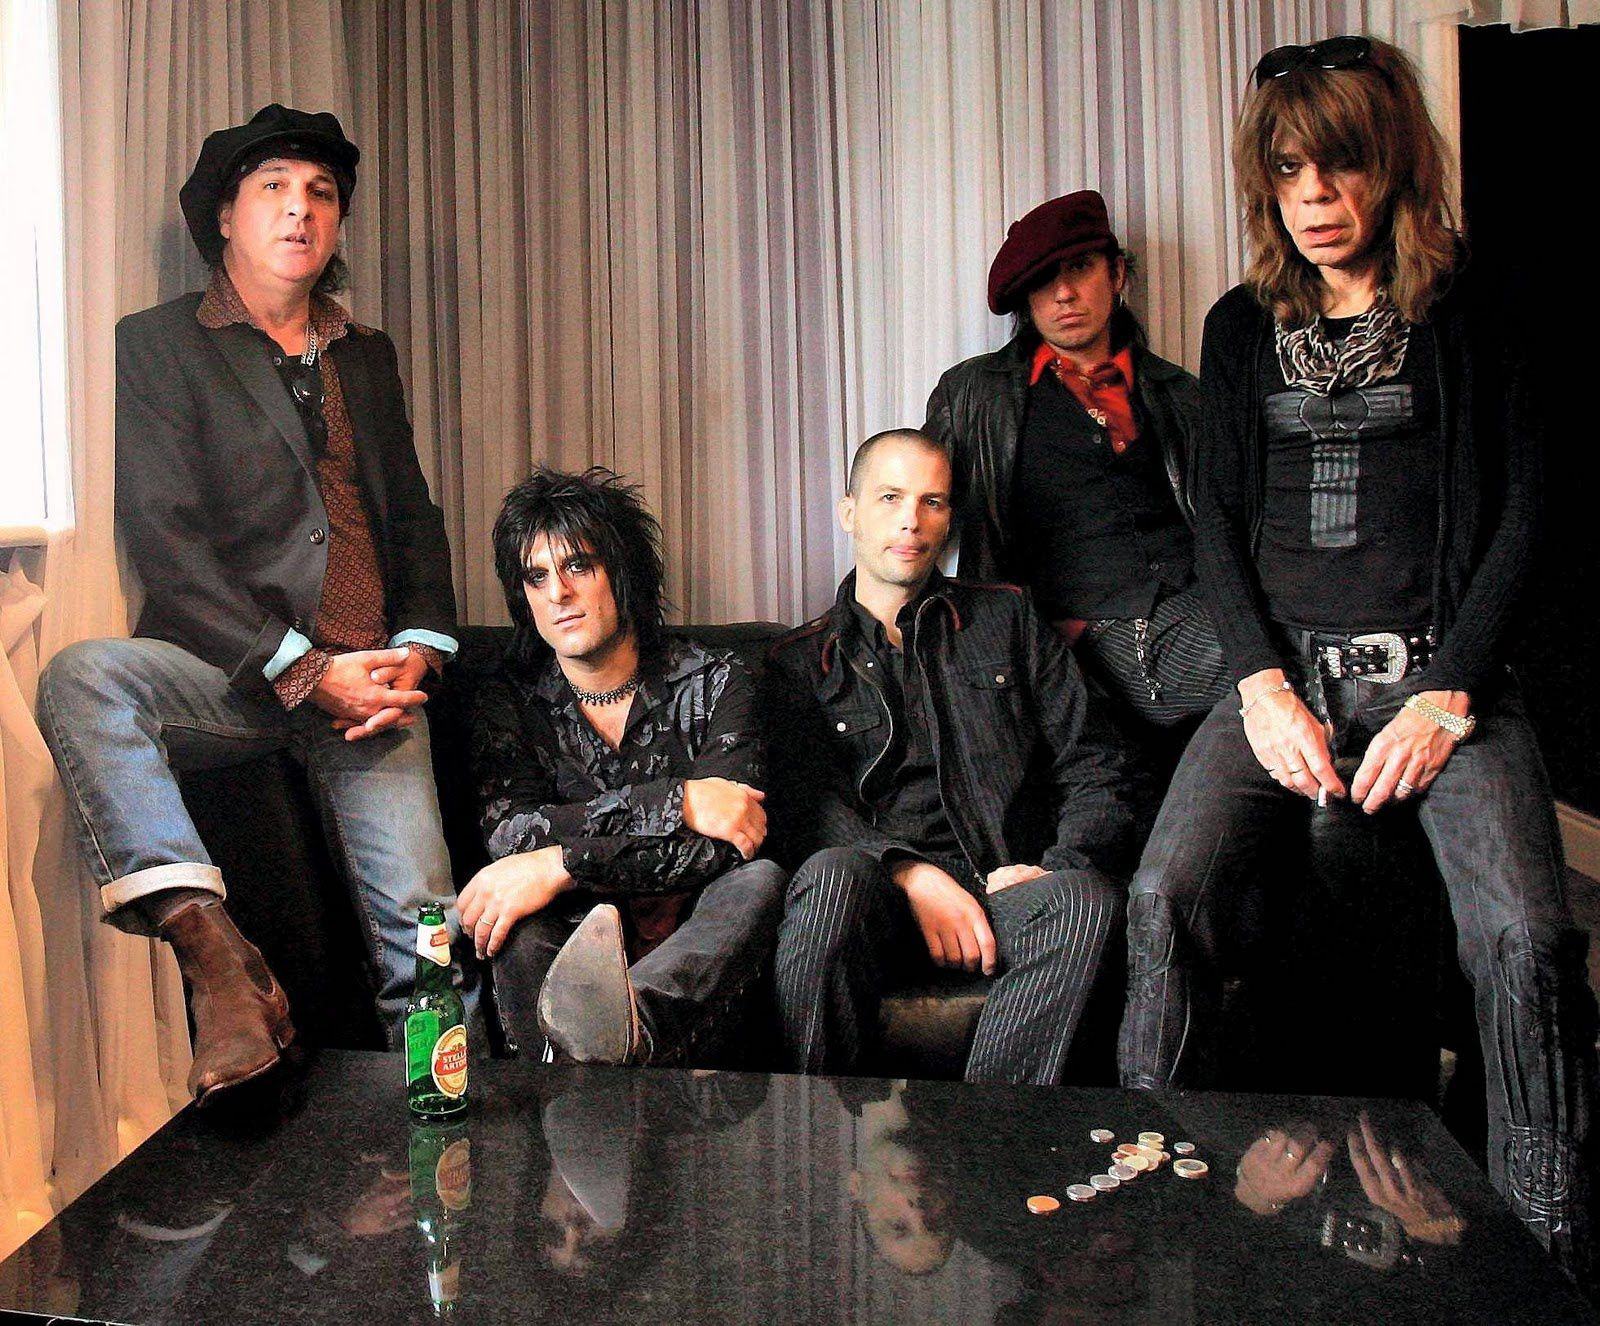 Sylvain Sylvainand the new New York Dolls